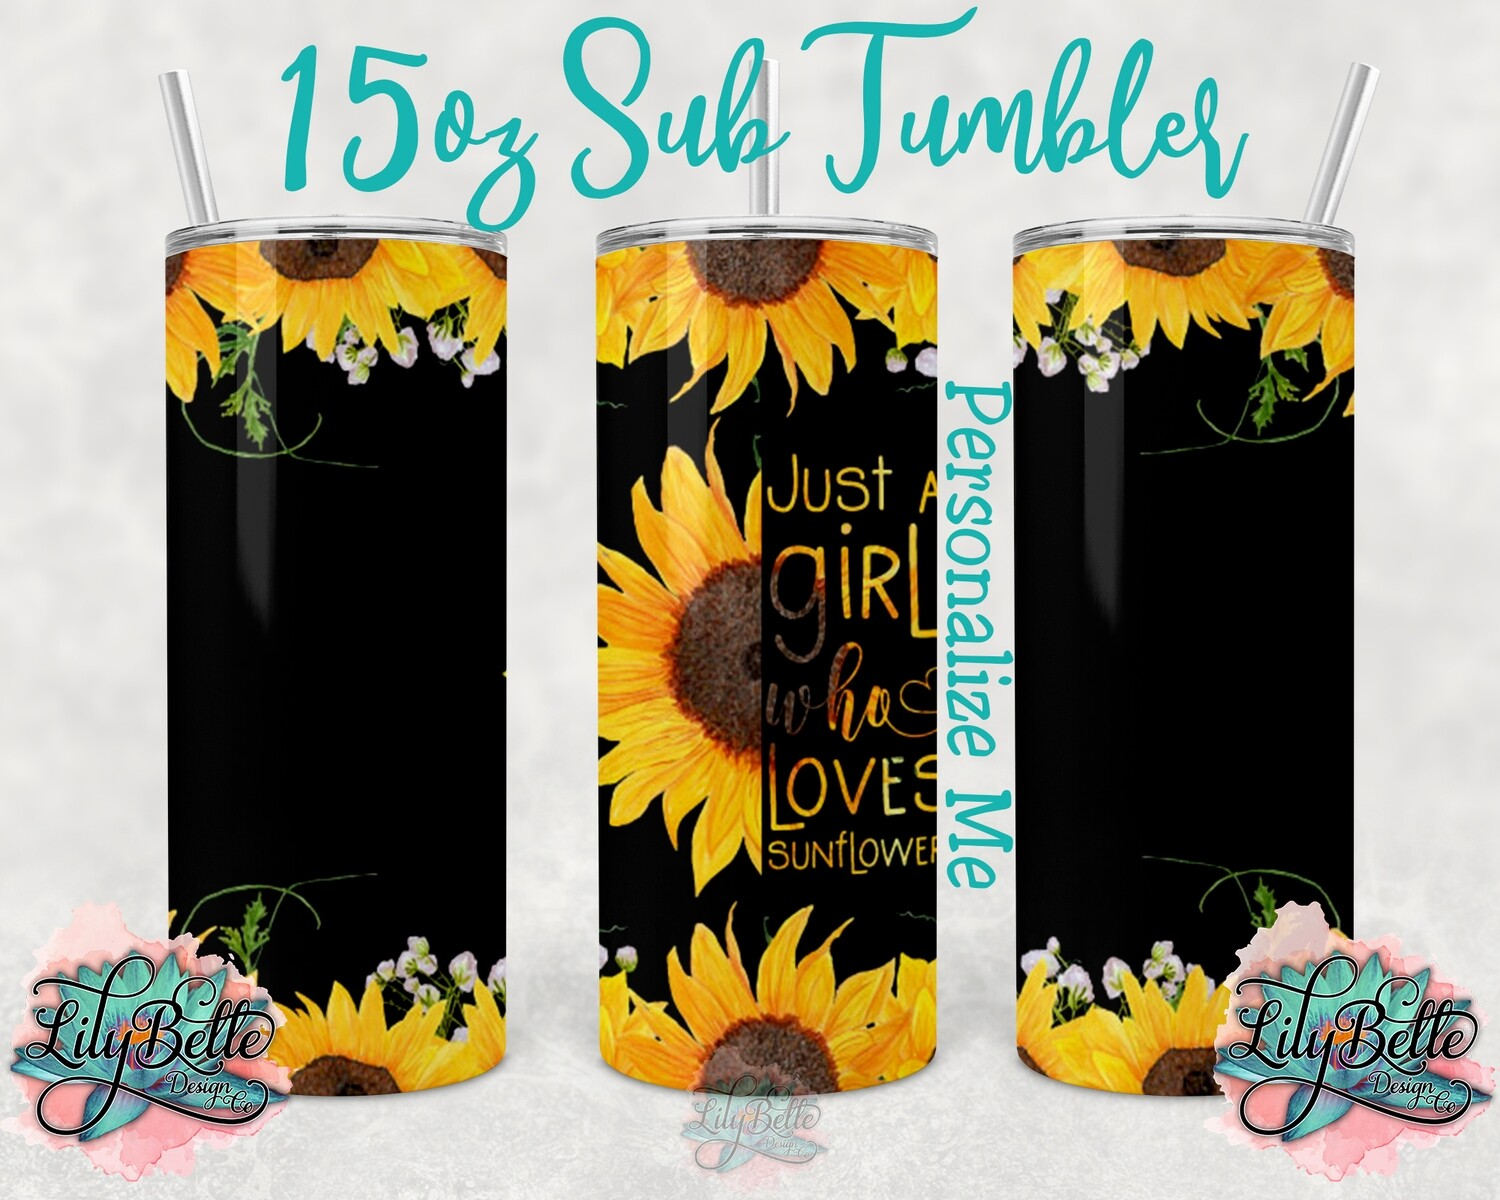 Just a girl who loves Sunflowers 15oz Sublimation Tumbler